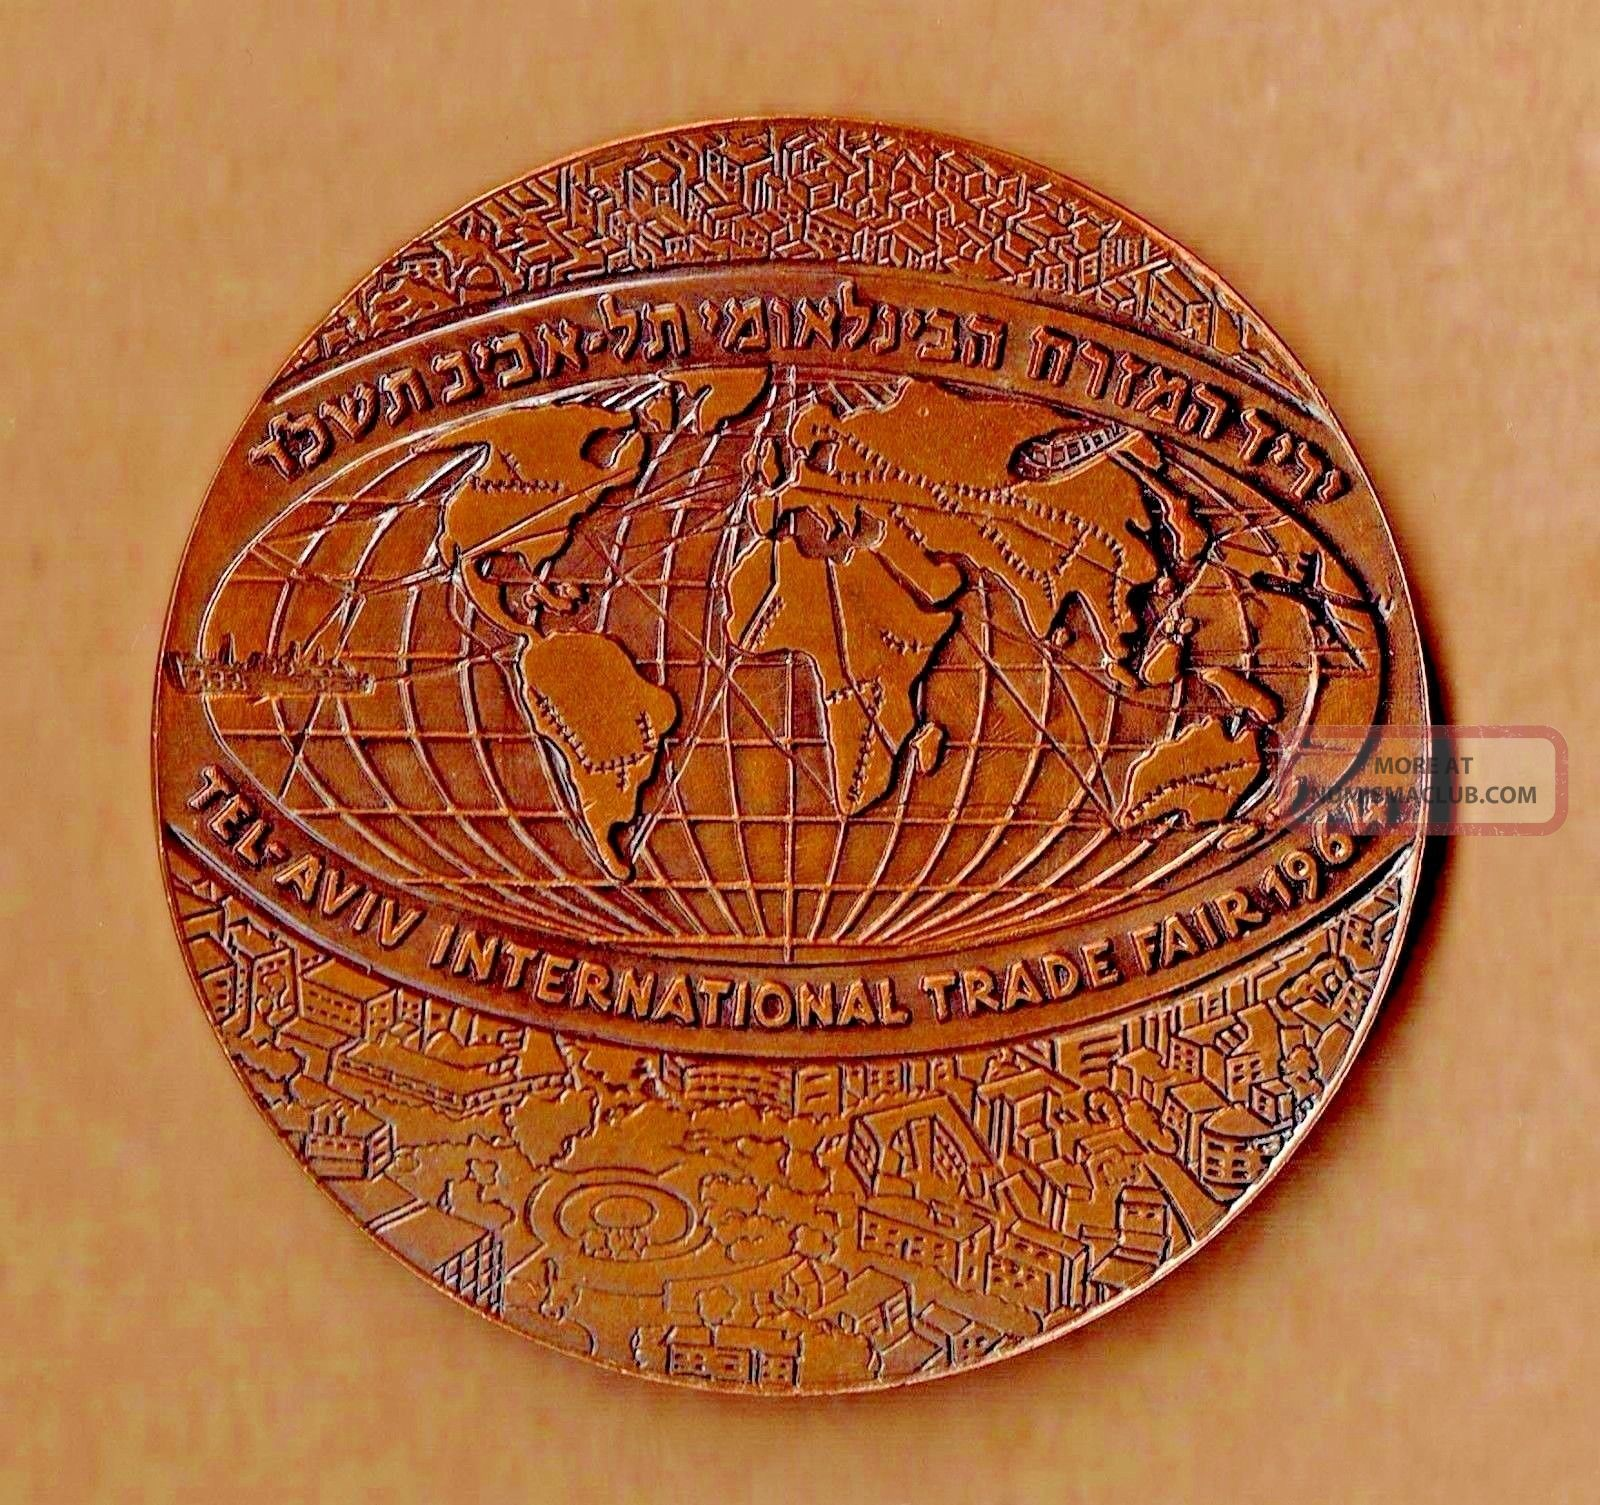 Israel 1964 The Trade Fair Official Award Medal Middle East photo